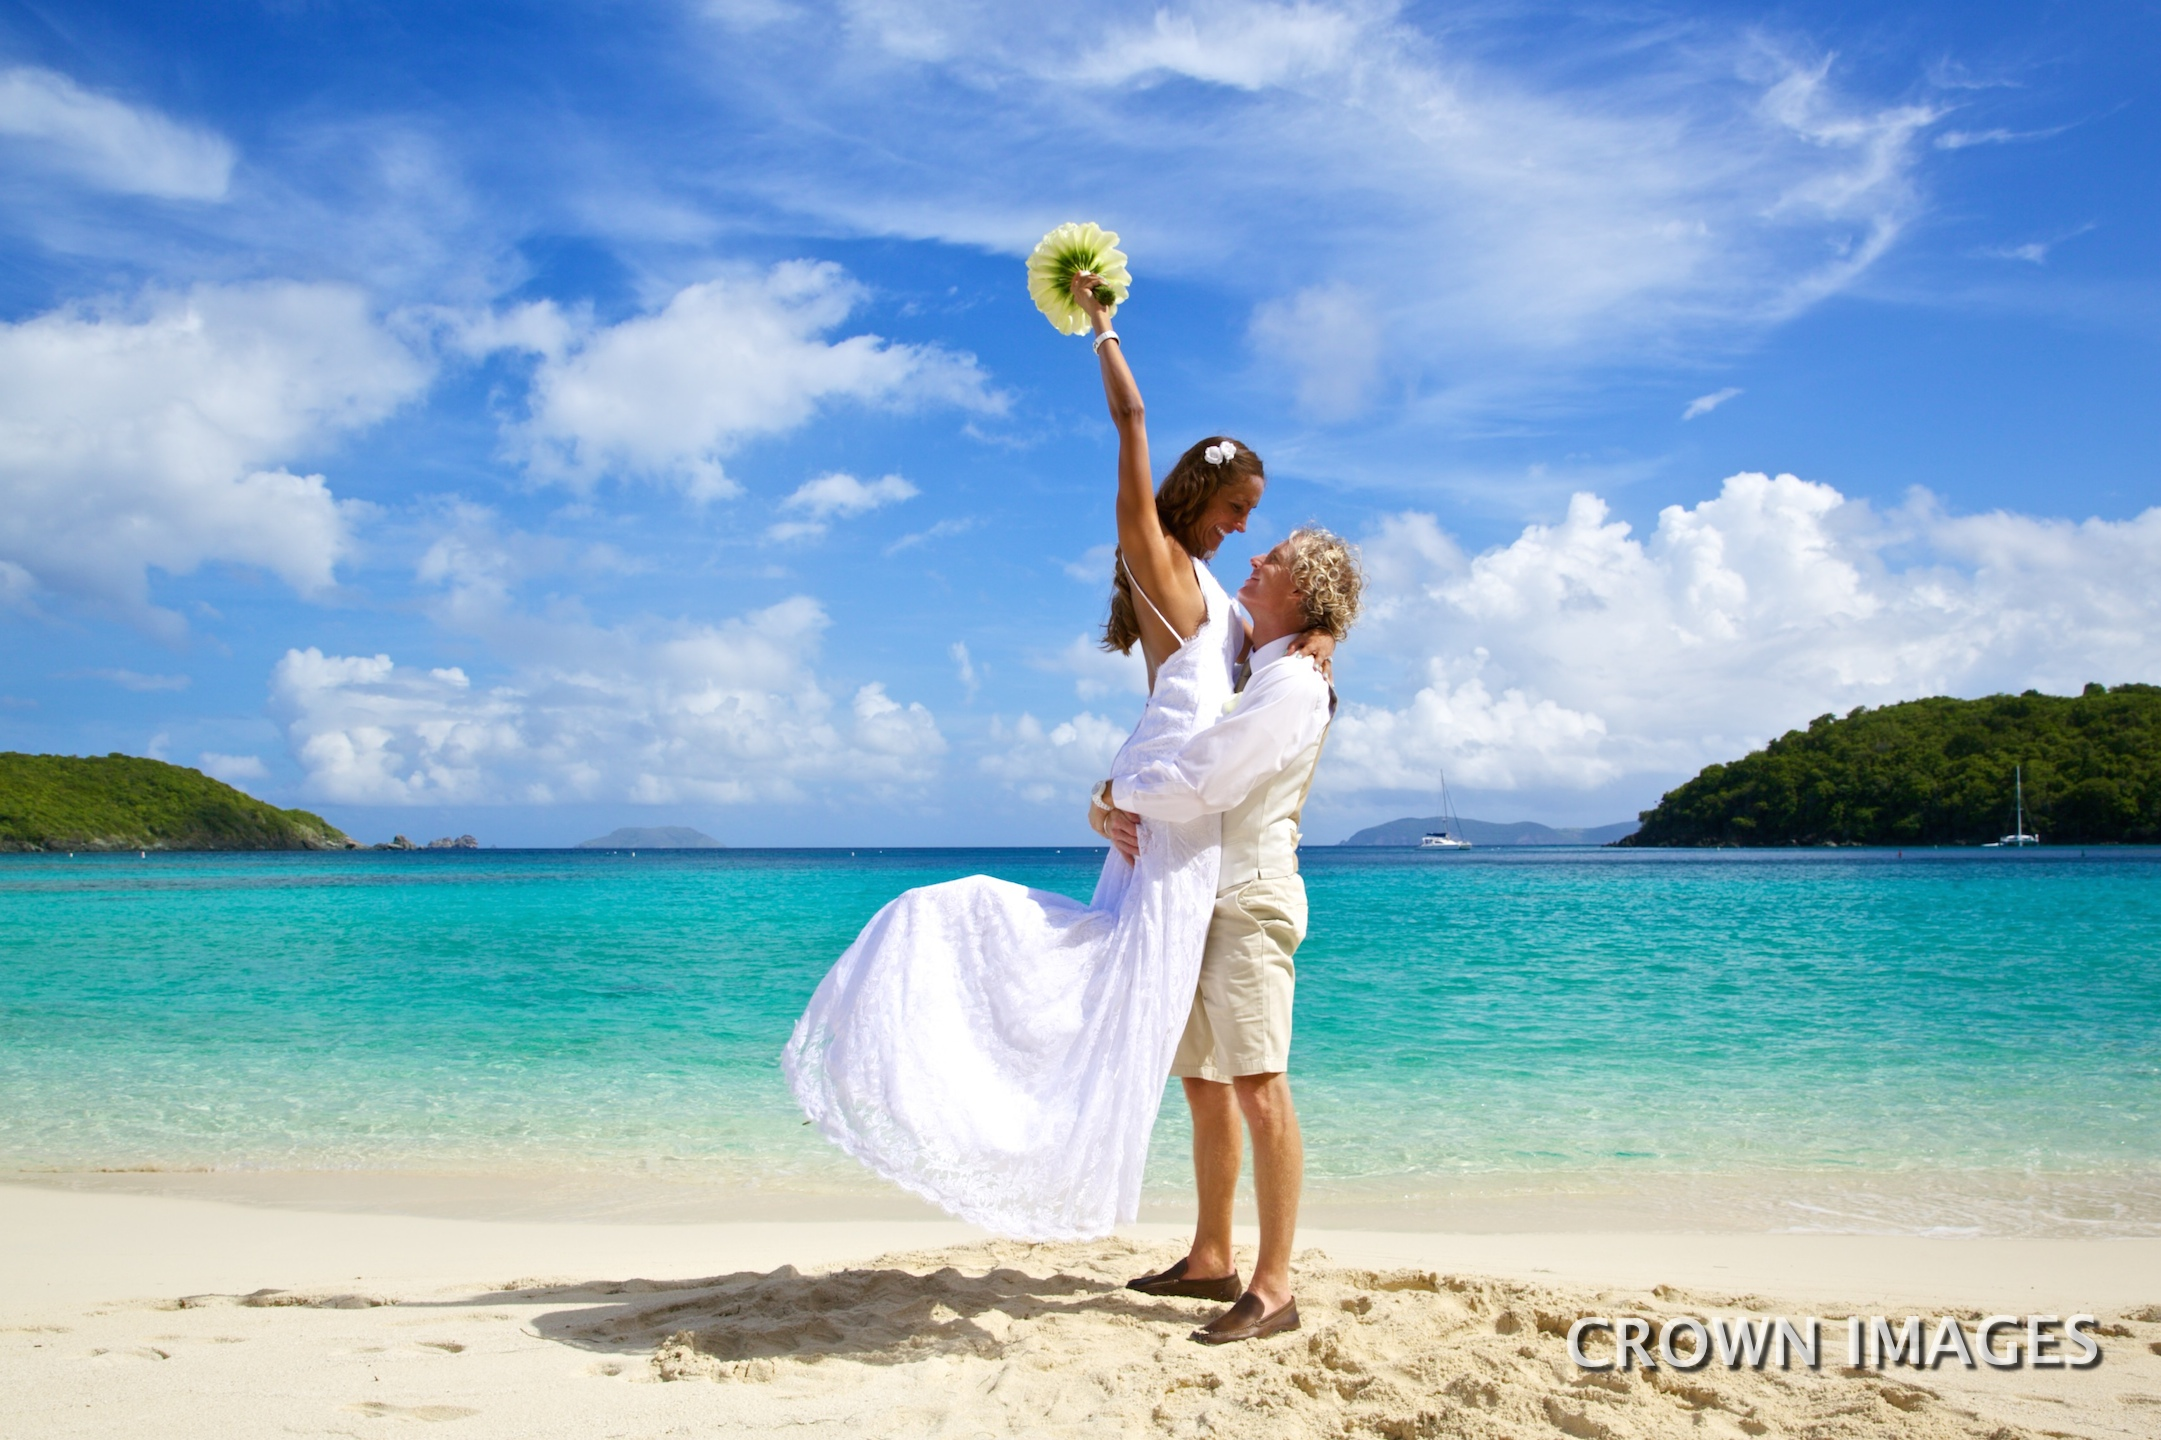 wedding on the beach virgin islands photo by crown images